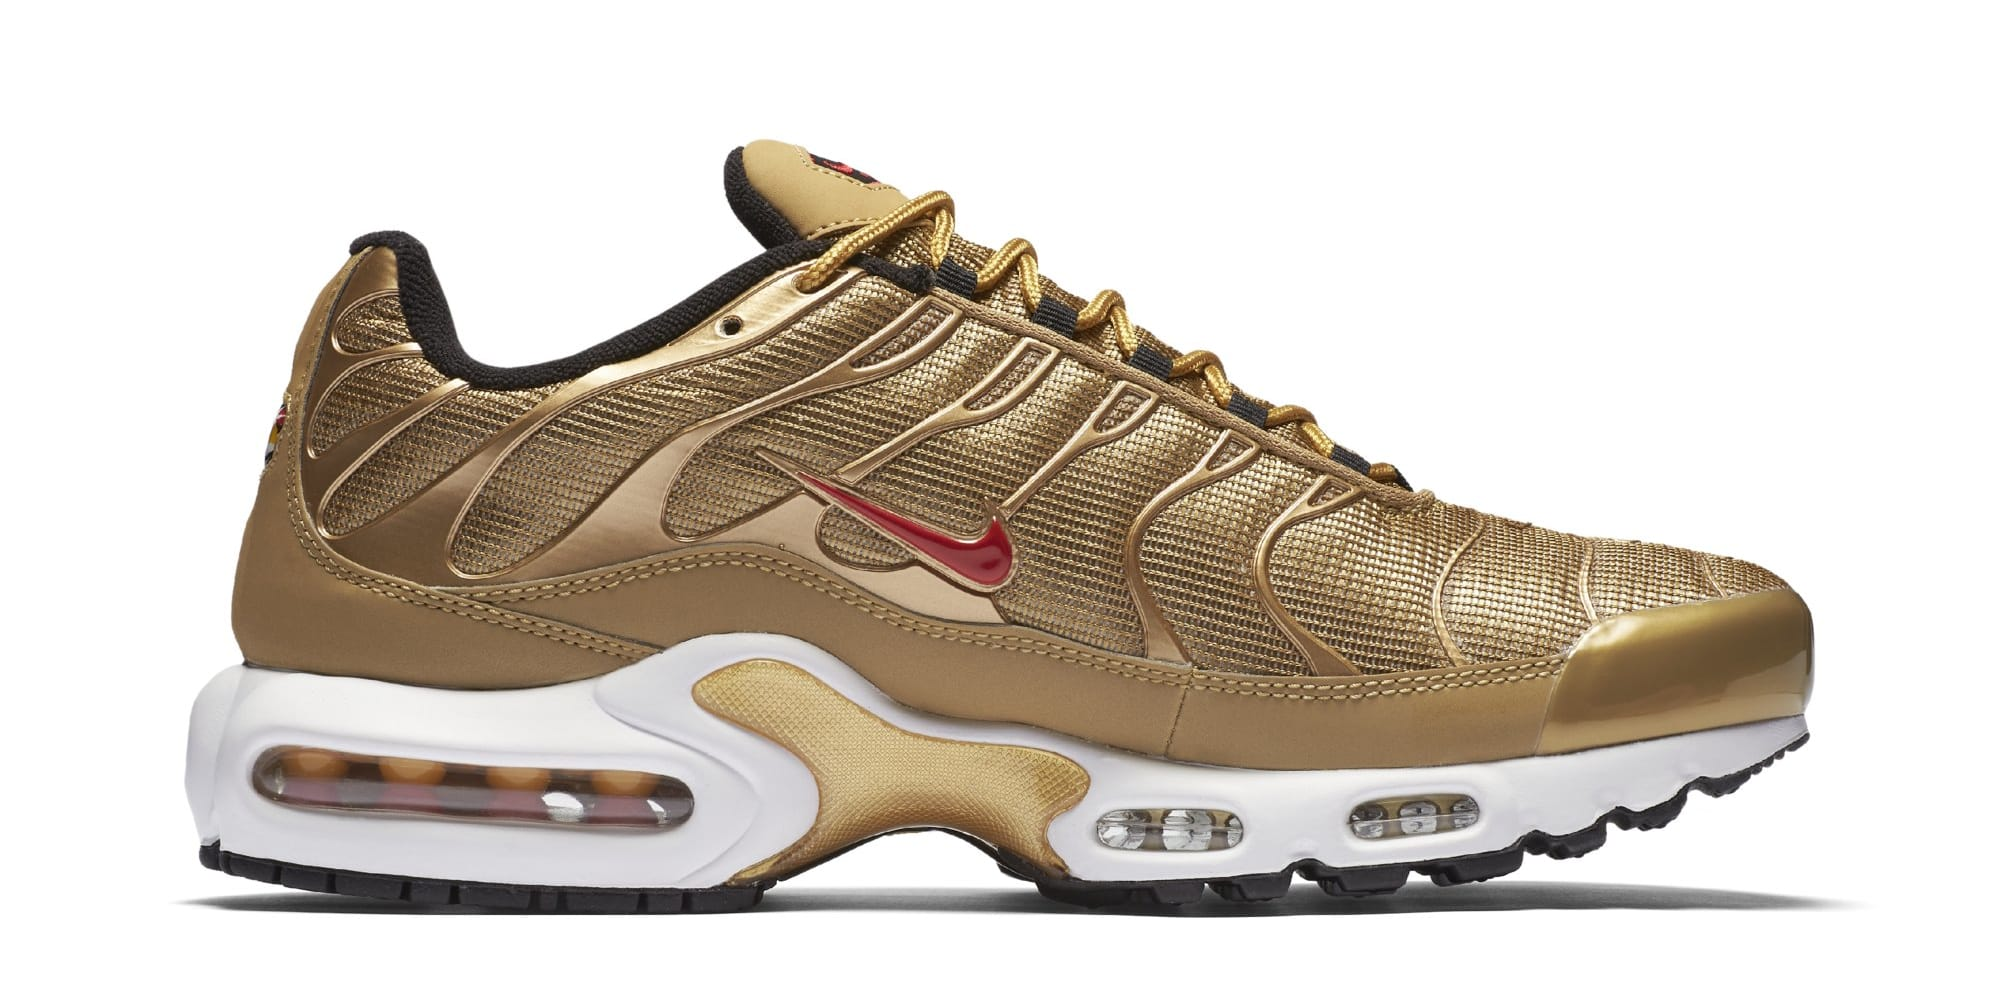 Nike Air Max Plus 'Metallic Gold' 903827-700 (Medial)